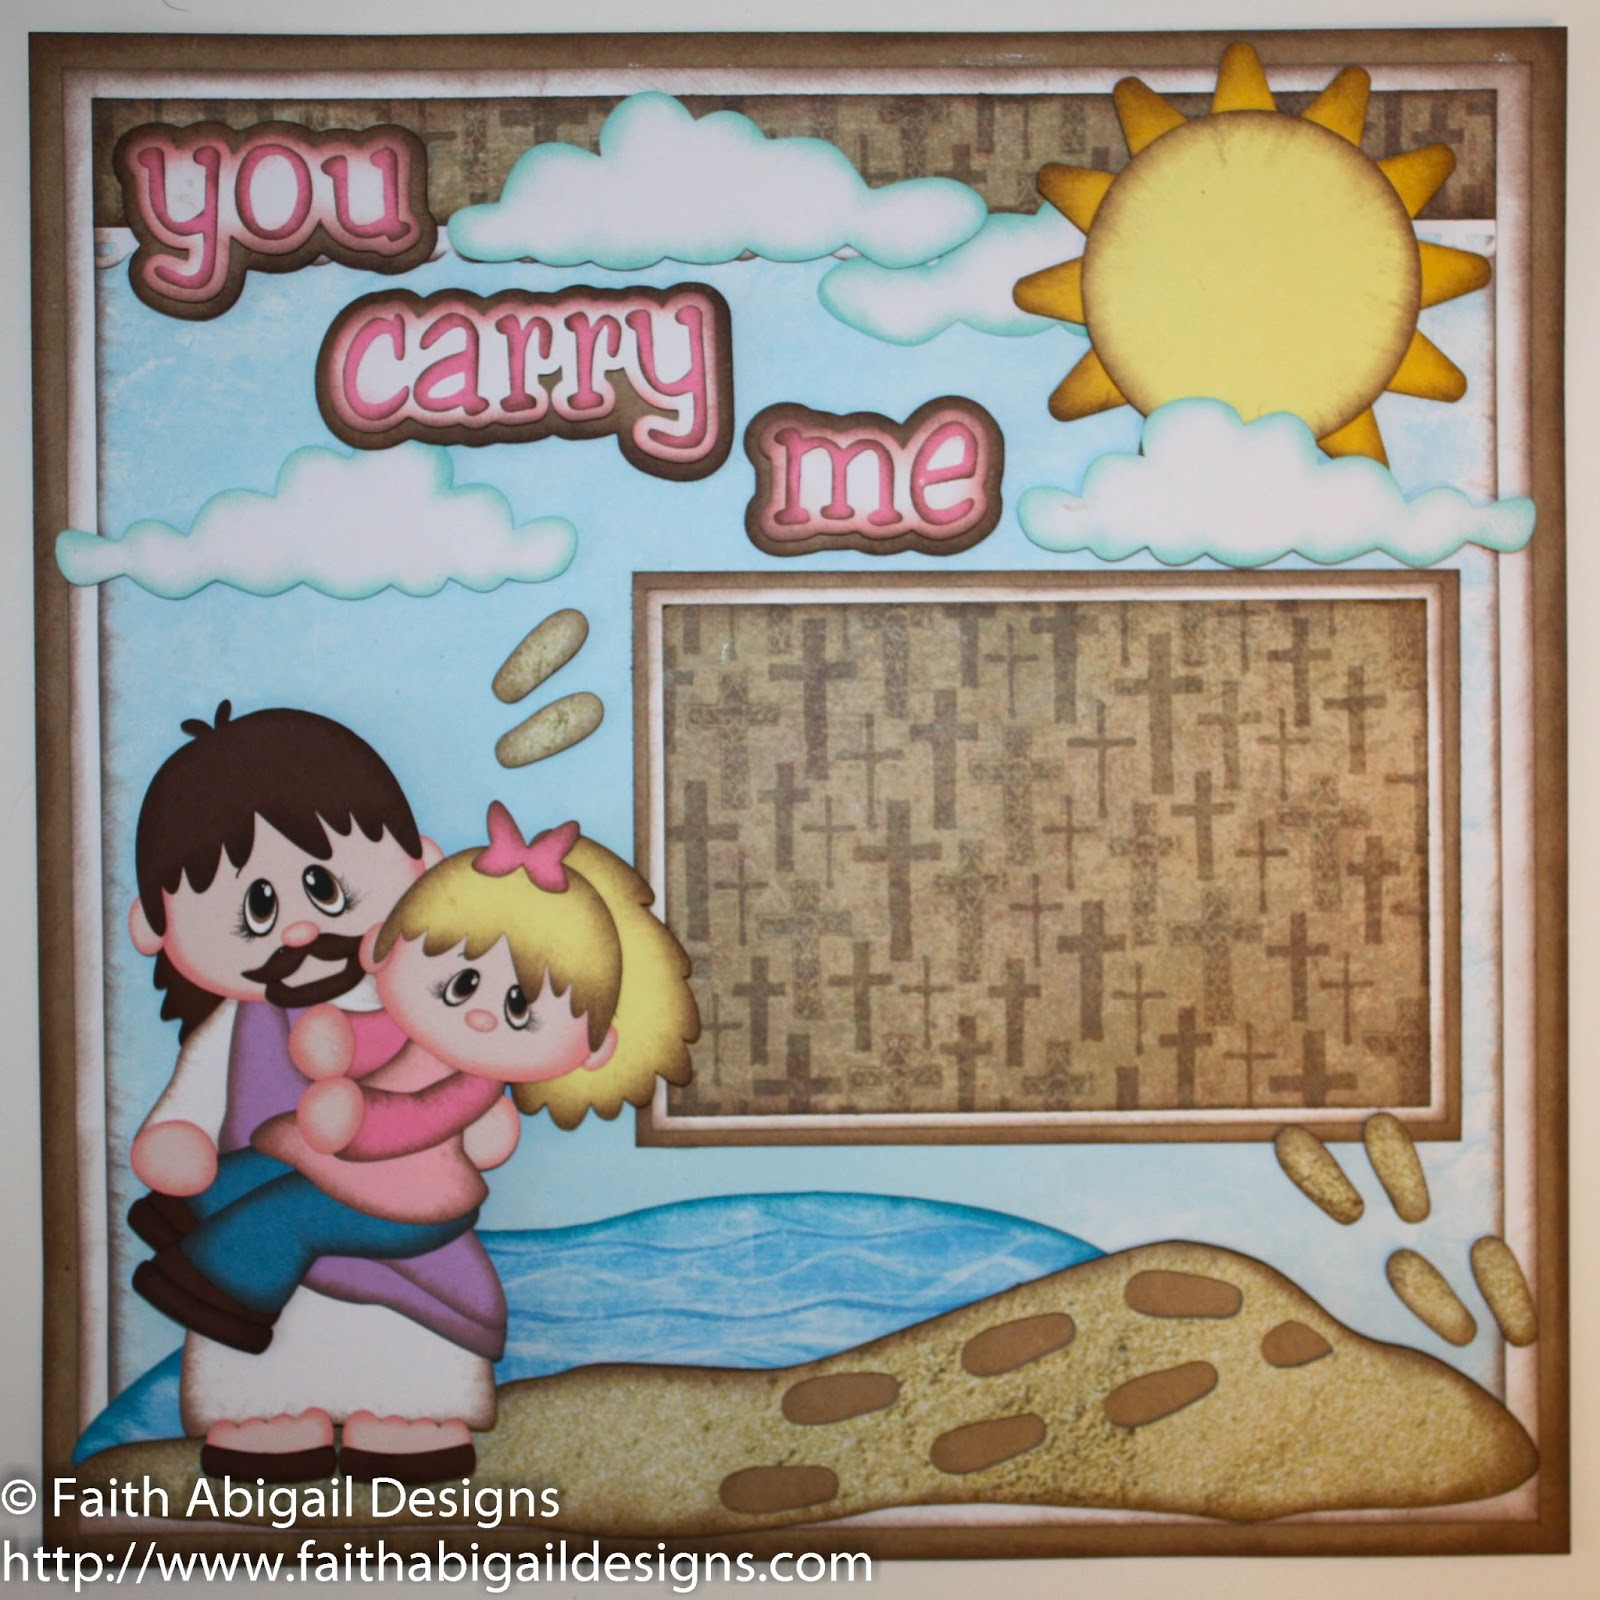 Scrapbook ideas and designs - You Carry Me 12 X12 Single Scrapbook Layout